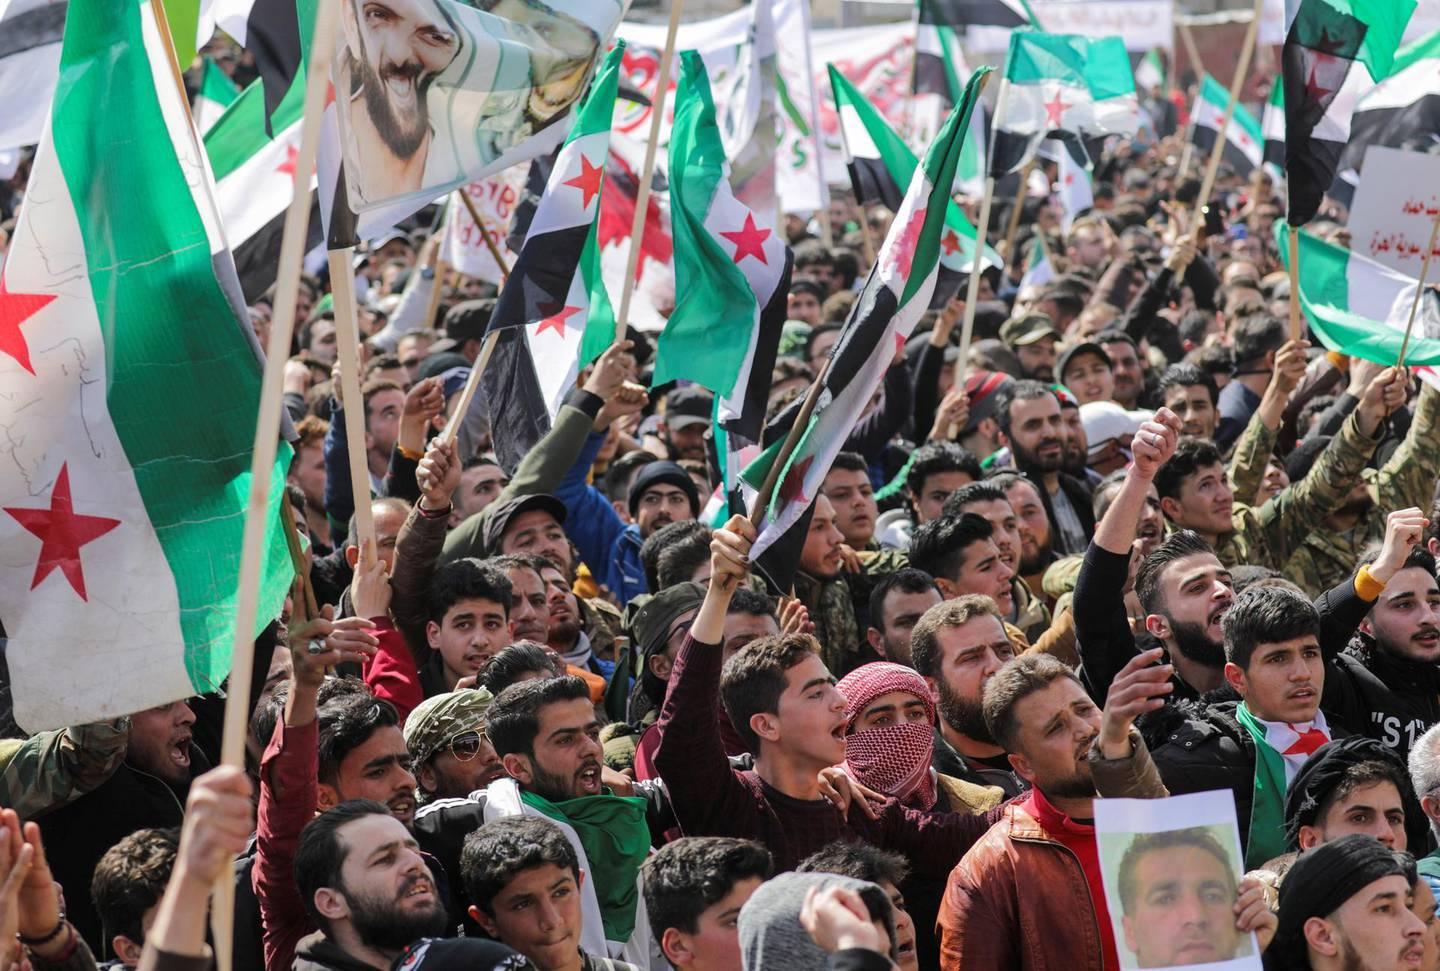 People carry banners and opposition flags during a demonstration, marking the 10th anniversary of the start of the Syrian conflict, in the opposition-held Idlib, Syria March 15, 2021. REUTERS/Khalil Ashawi